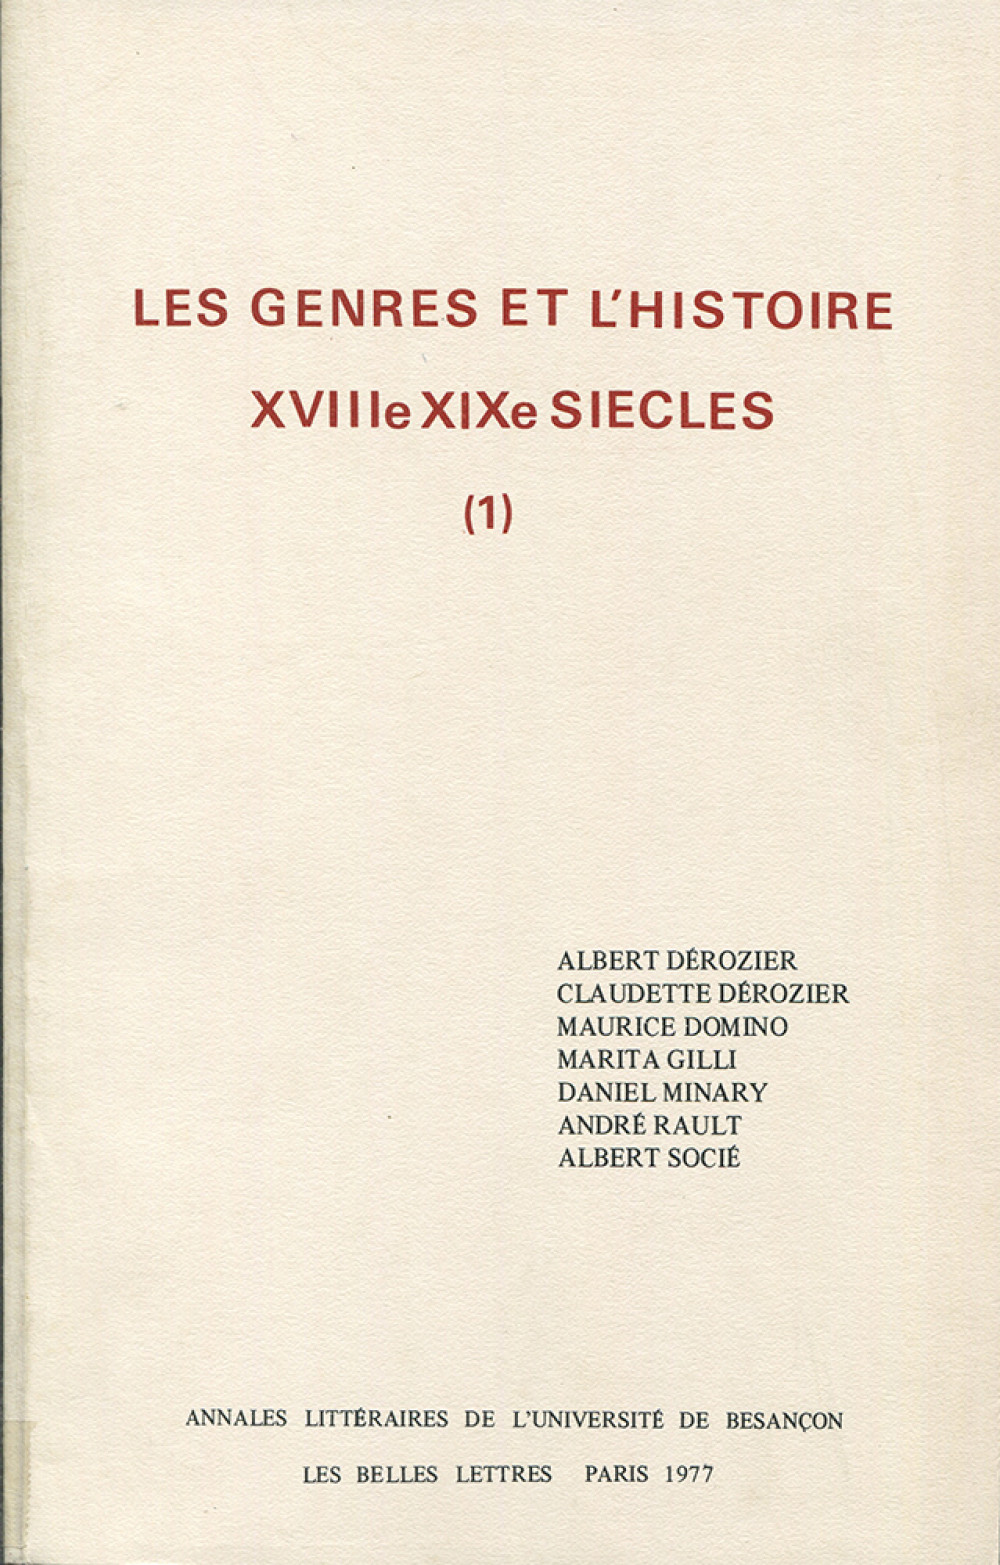 "Les genres et l'histoire <span style=""font-variant: small-caps"">XVIII</span><sup>e</sup>-<span style=""font-variant: small-caps"">XIX</span><sup>e</sup> siècles. Tome I"